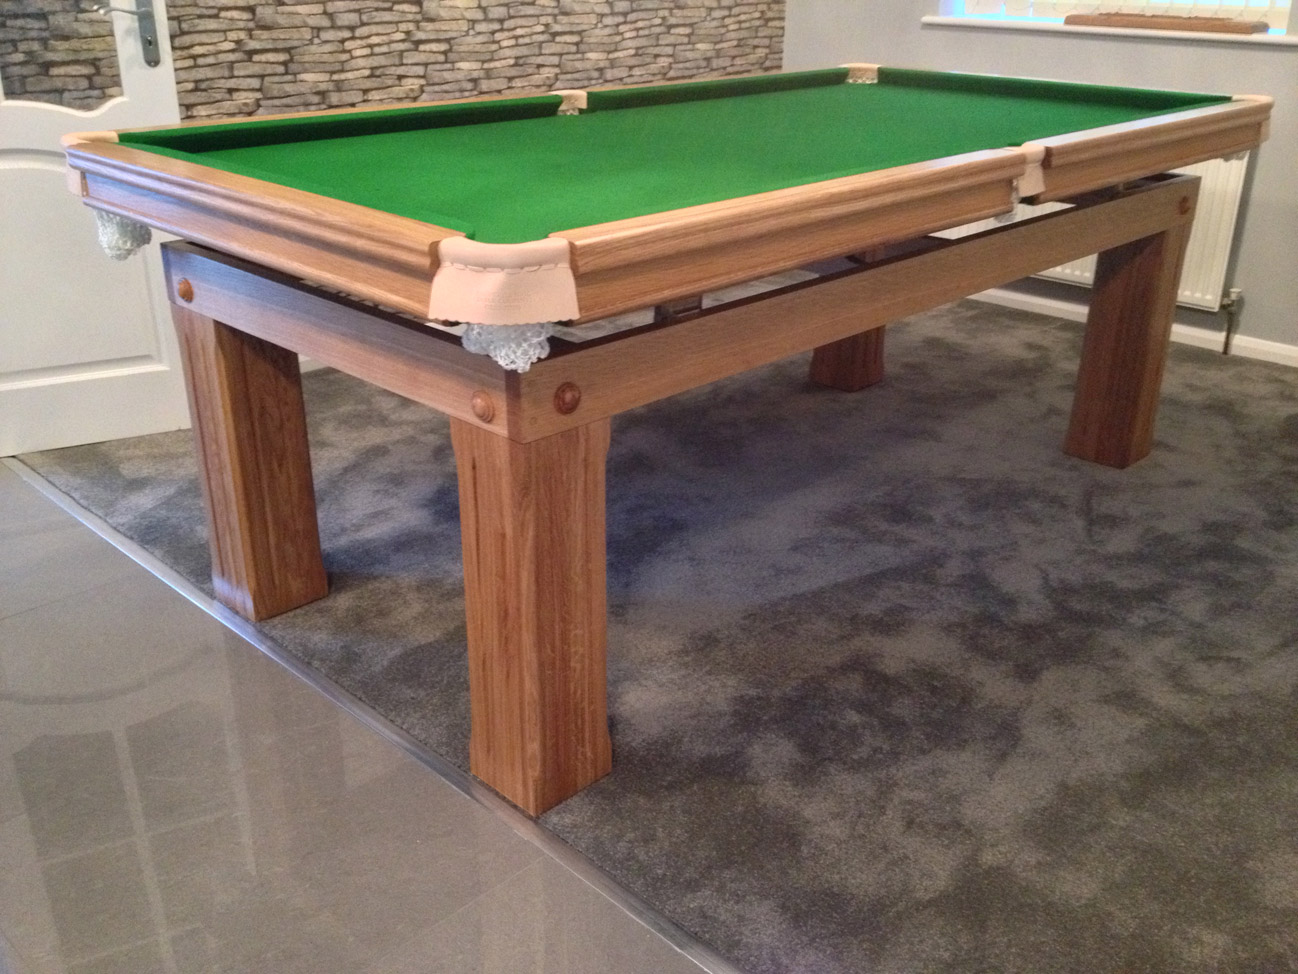 Dining Table Snooker Sold Edwardian Period 8 Foot